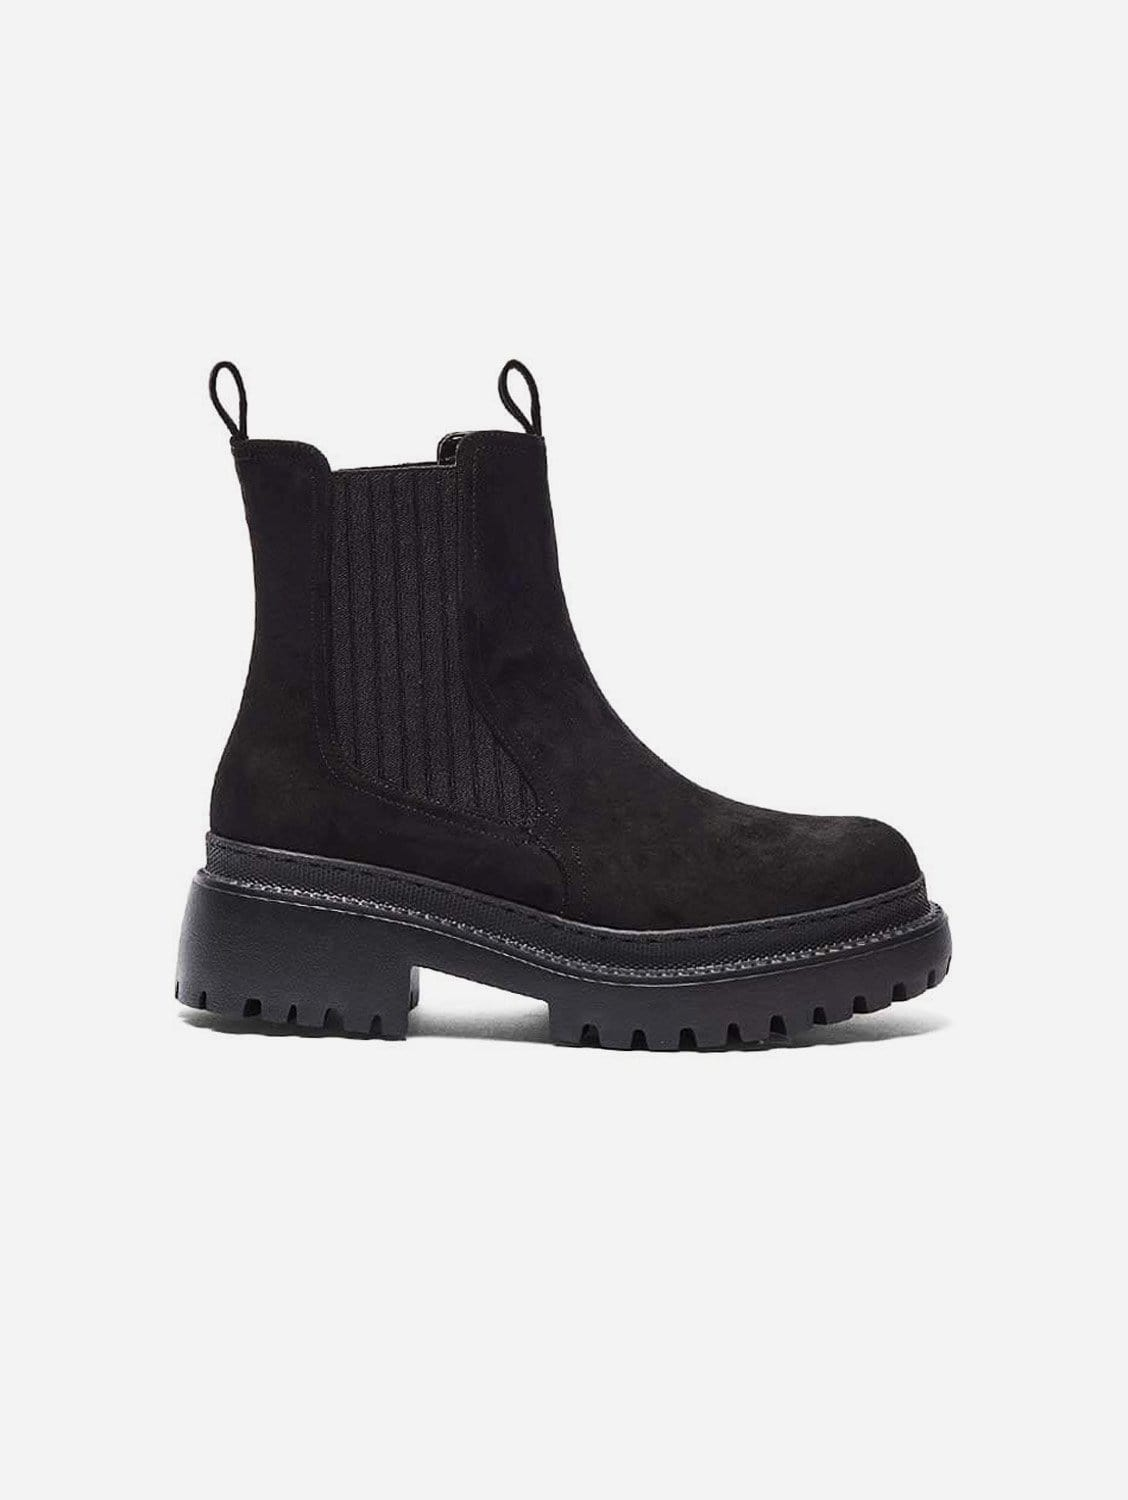 Linda Recycled Polyester Vegan Suede Winter Boots   Black